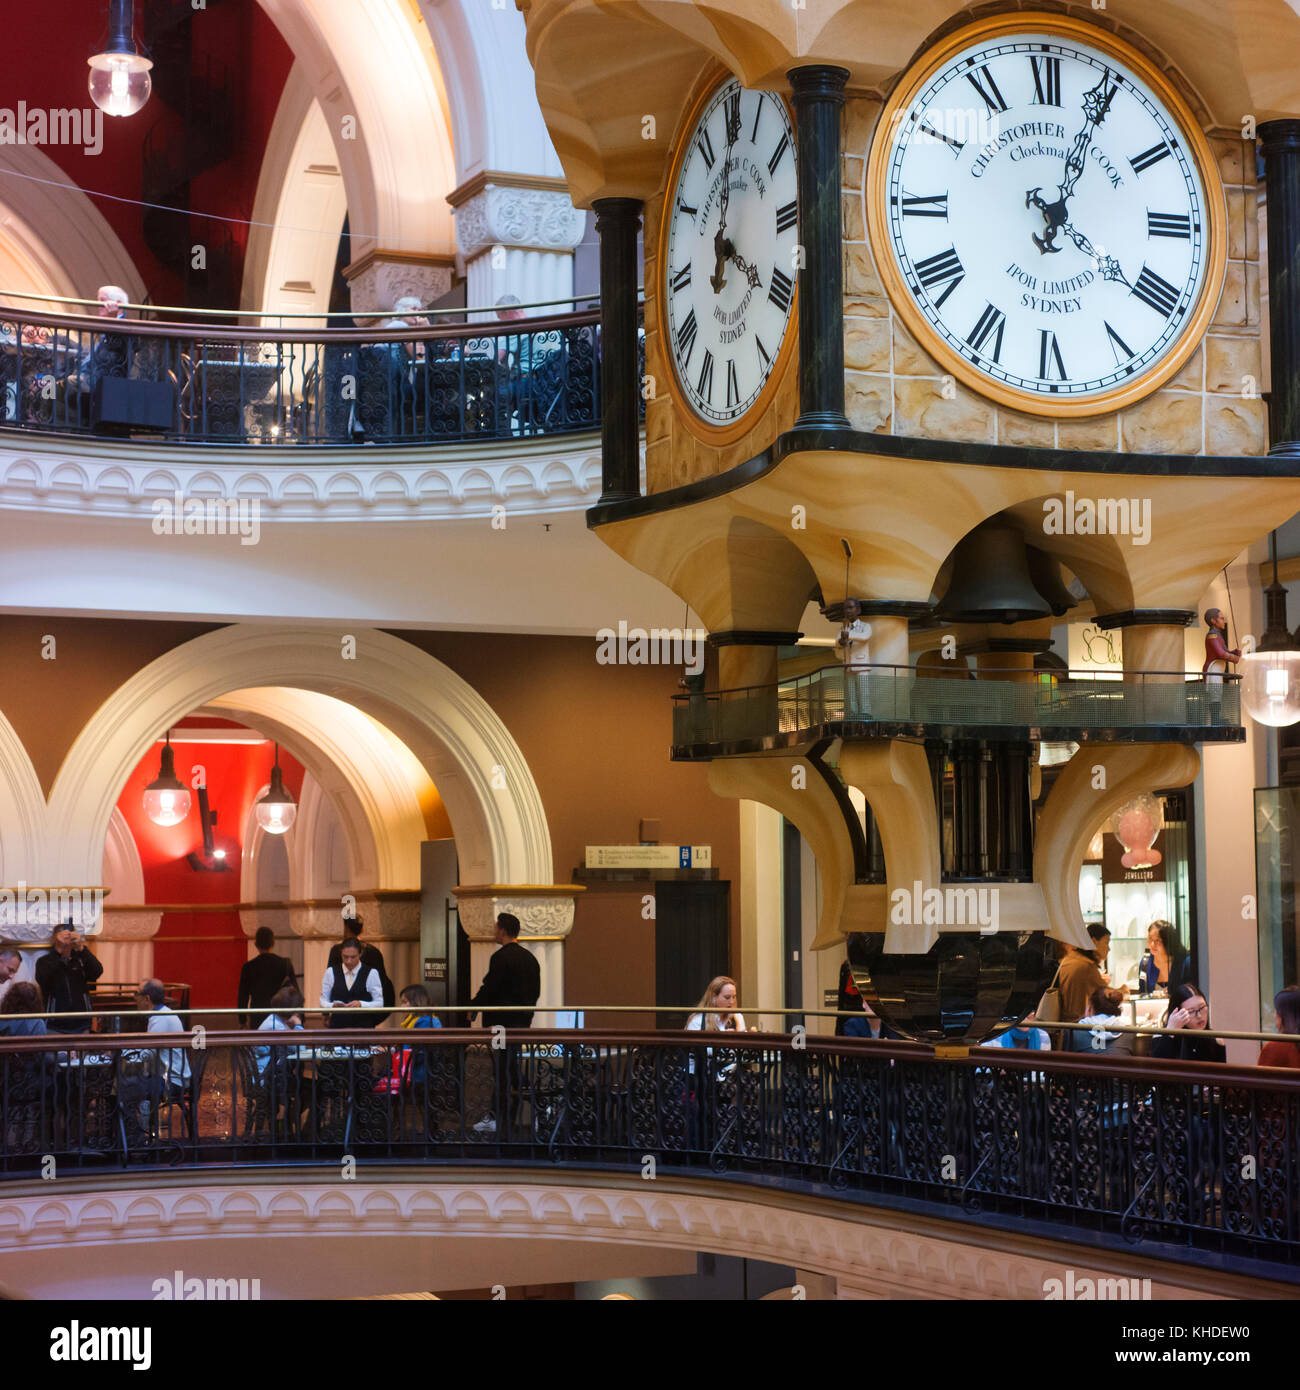 Interior of the Queen Victoria Building (QVB) showing cafes and architectural features. - Stock Image